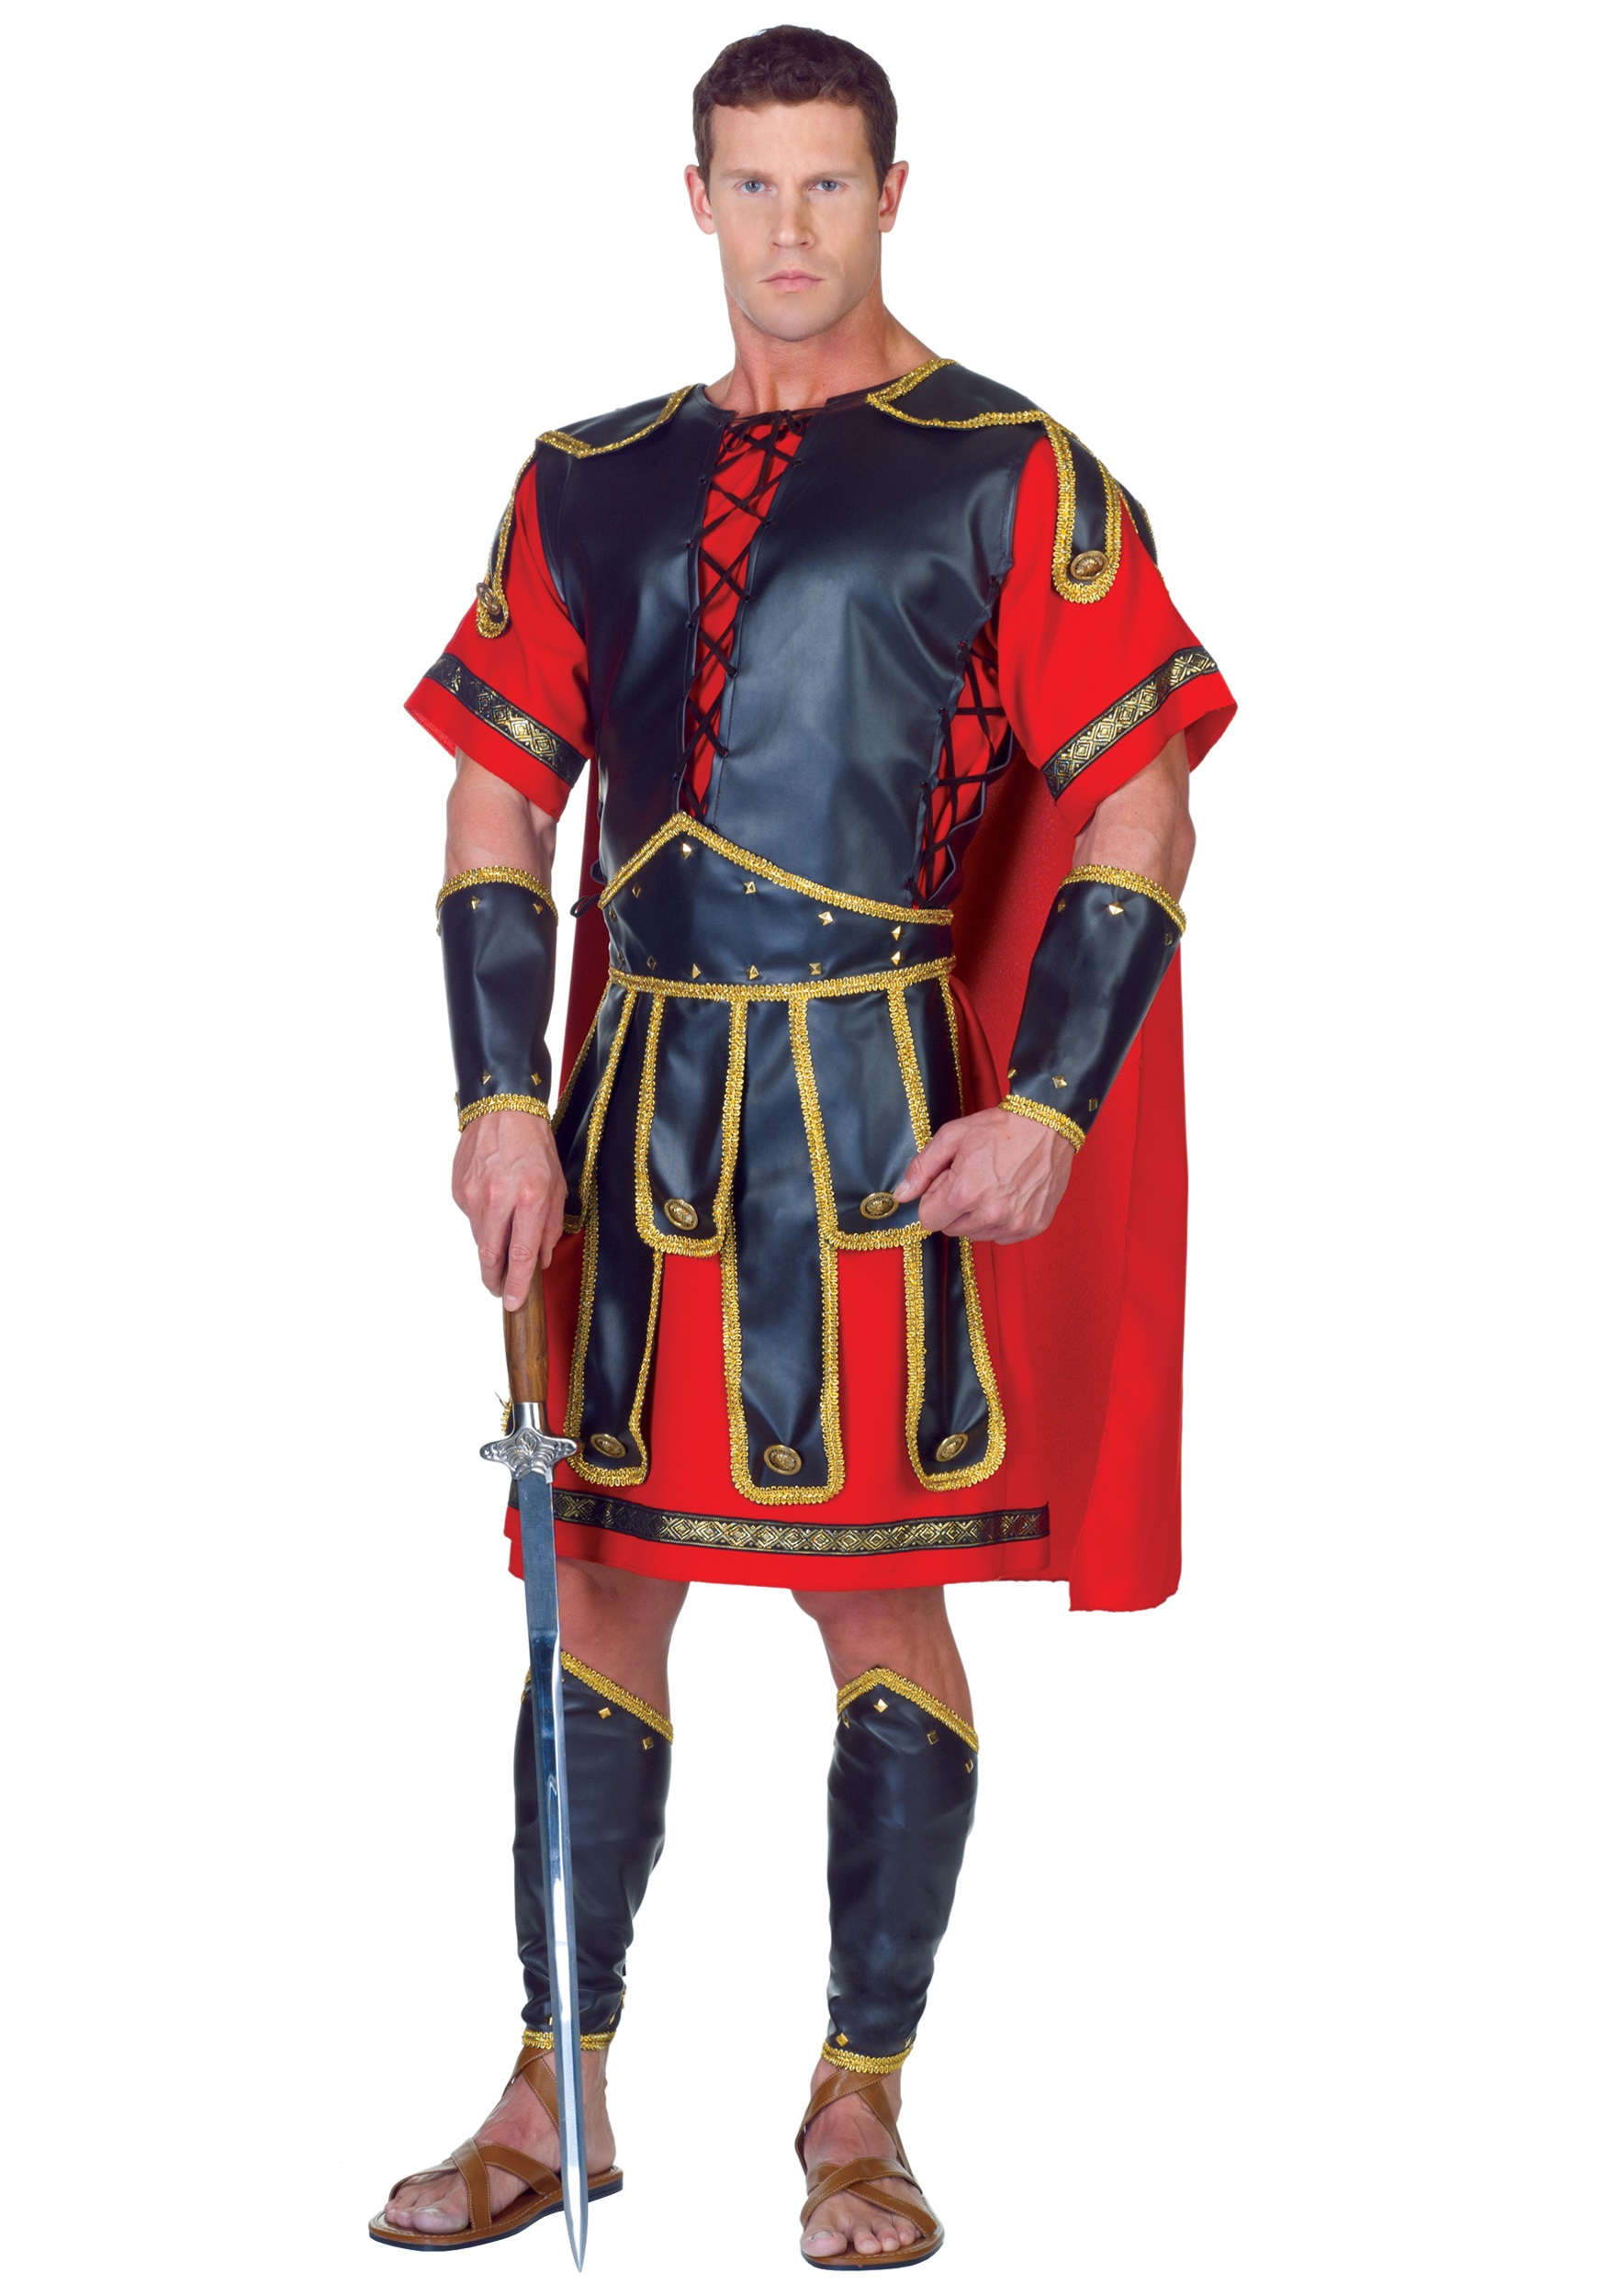 Menu0027s Gladiator Costume  sc 1 st  Halloween Costumes & Menu0027s Gladiator Costume - Halloween Costumes